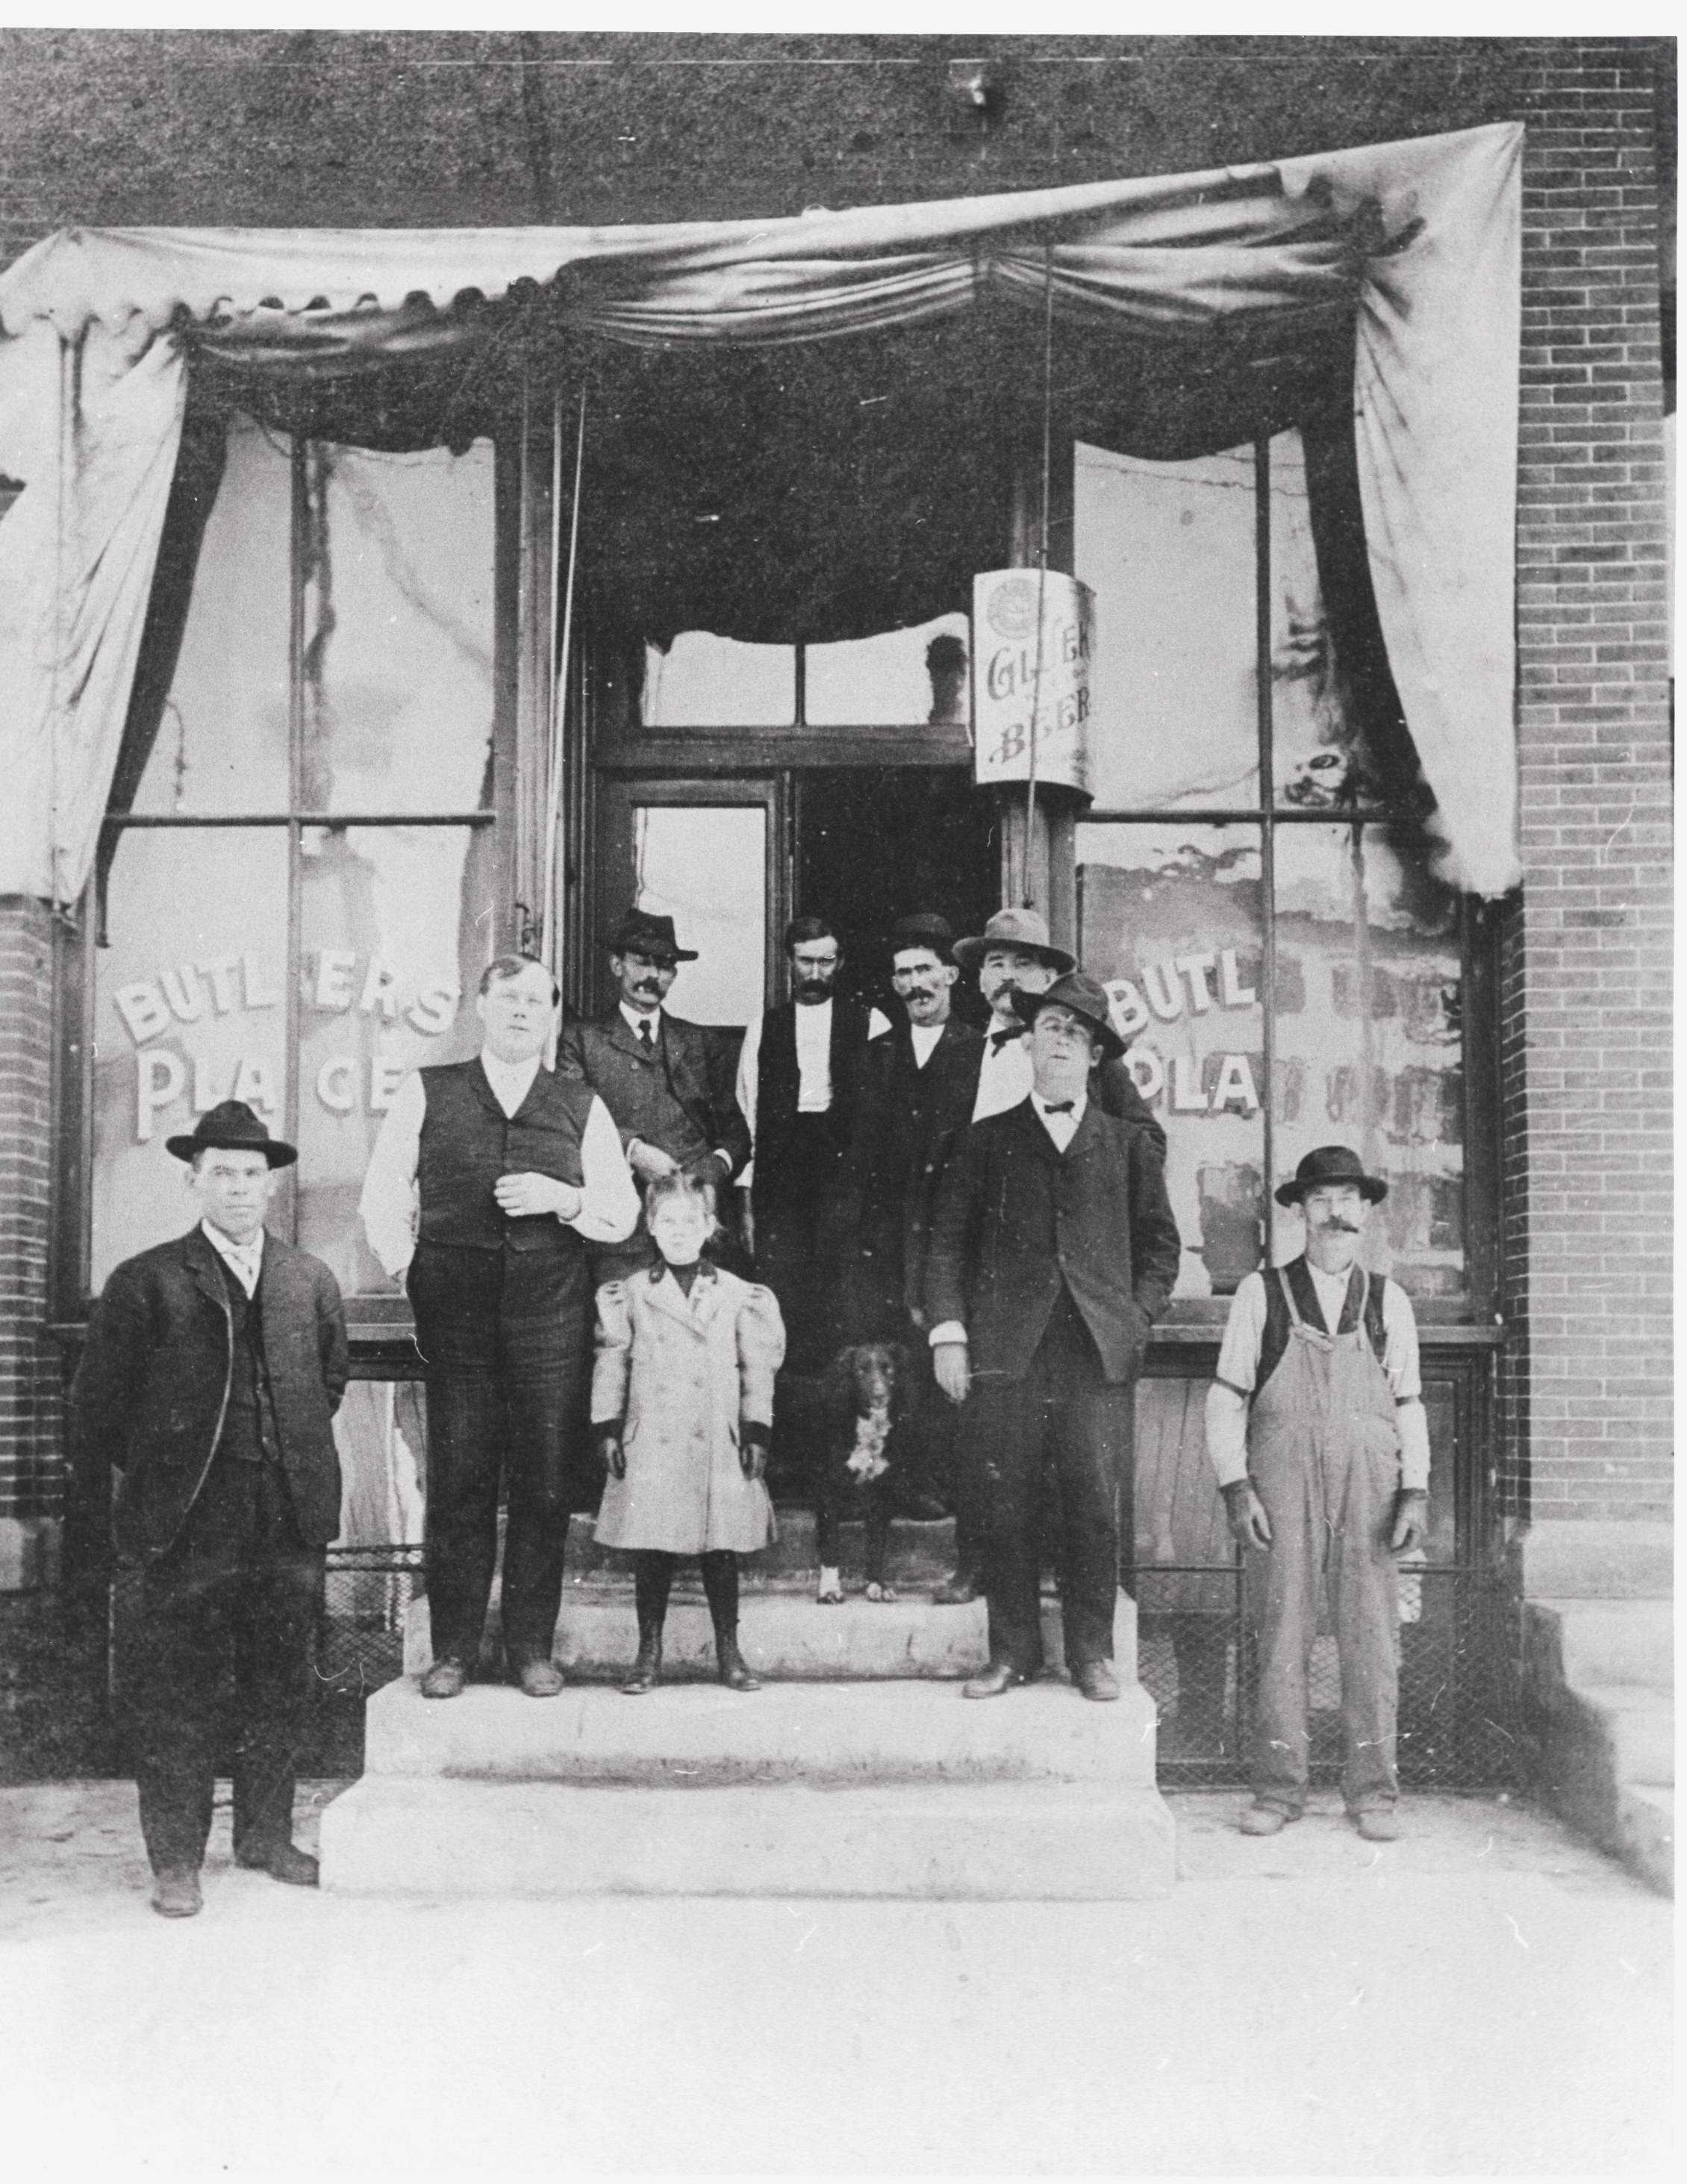 Doorway of the Farmers' Hotel saloon, called Butlers Place, sometime after 1906 (dated because the concrete sidewalks seen in this photograph were installed that year). The second man from the left, standing on the stairs in shirtsleeves, is identified as Edward H. Butler, nephew of the owners. (Object ID# 2057.3.46)